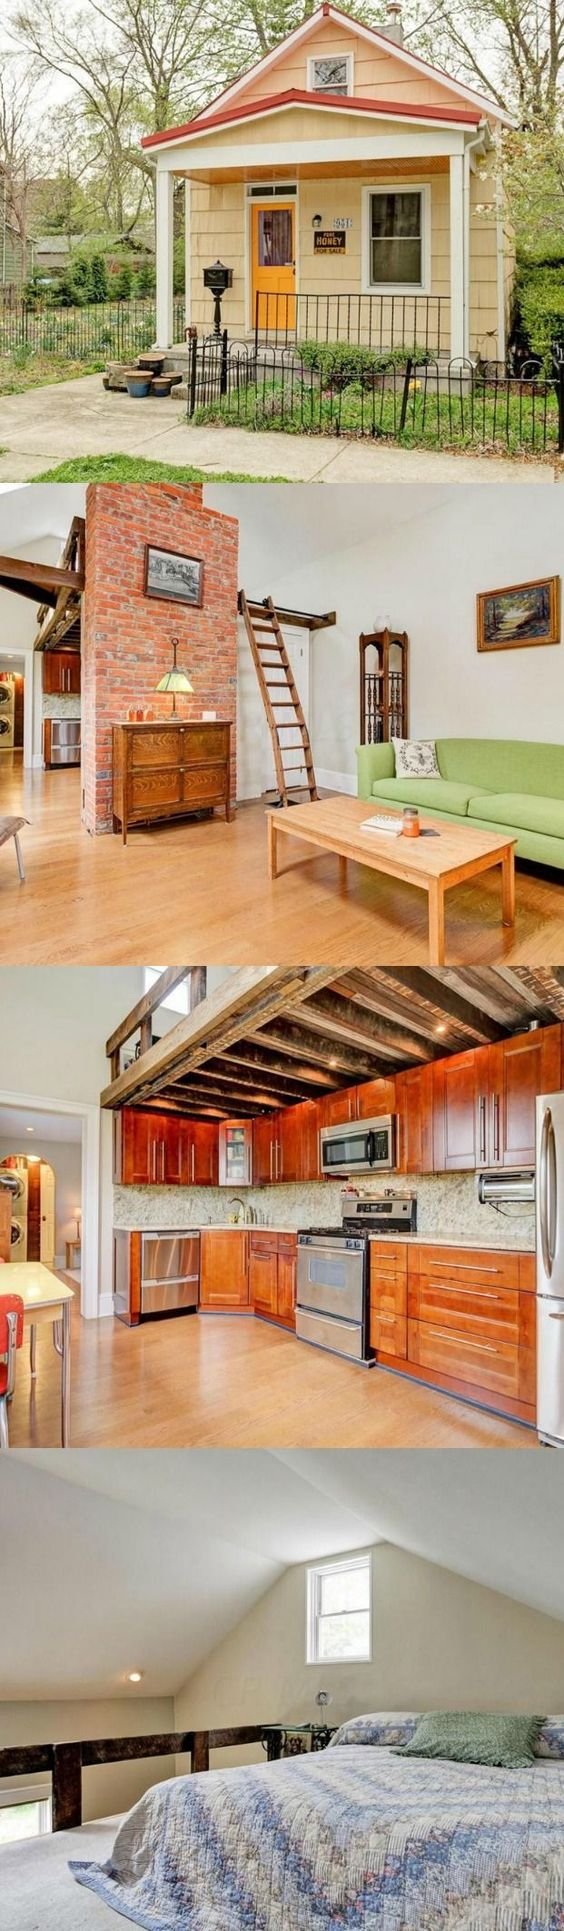 Awesome layout for a tiny home.: